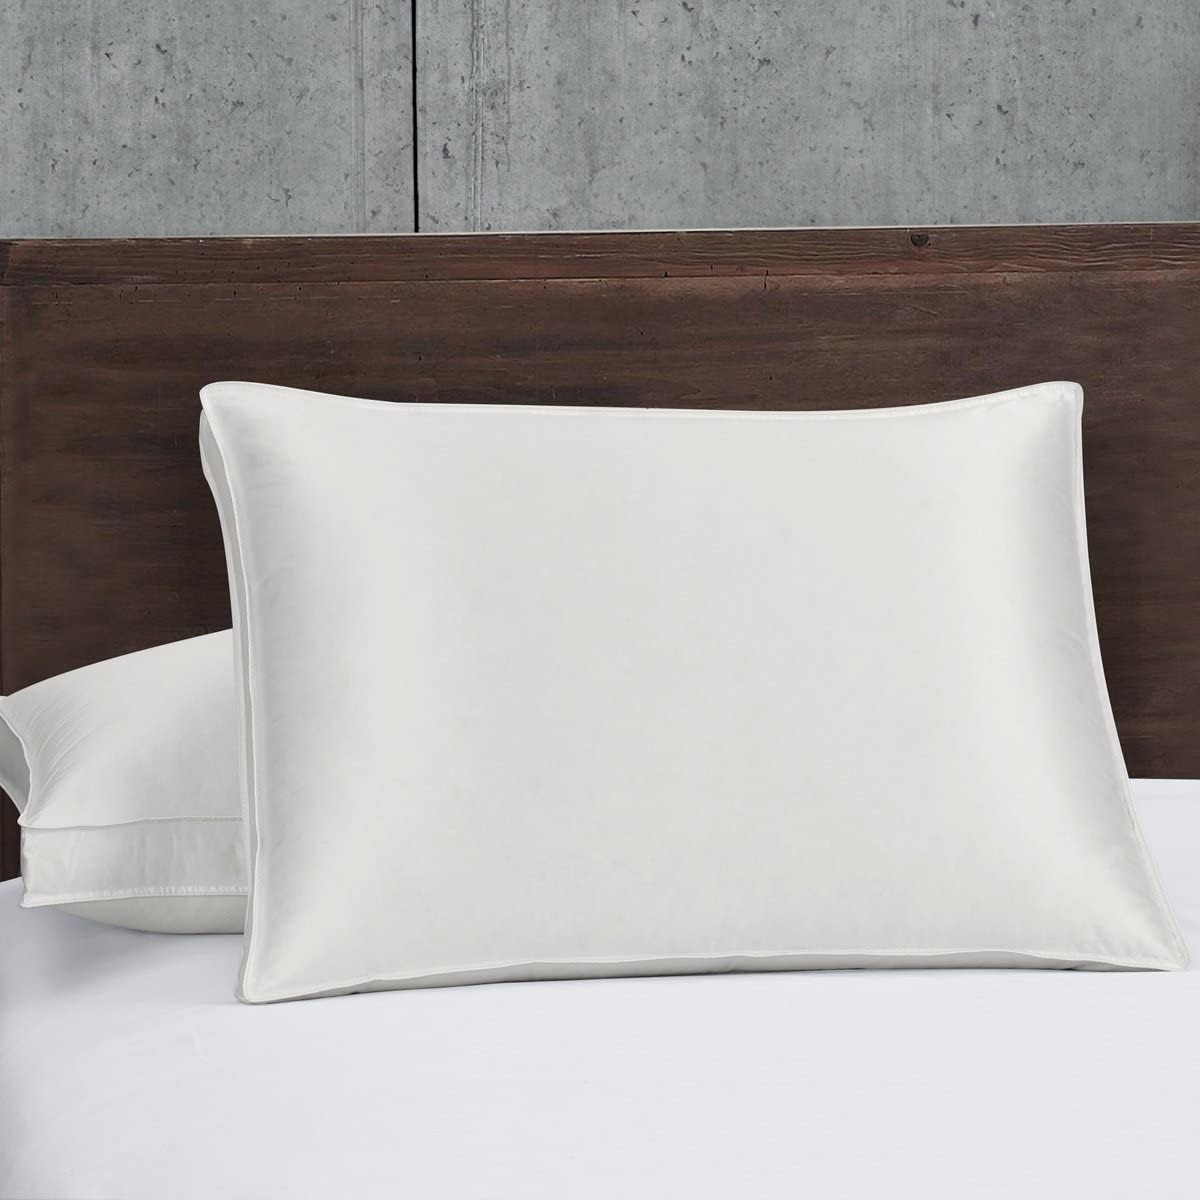 Royal Hotel Abripedic Silk Goose Down Pillow - 450 Thread Count Cotton-Silk-Blend Shell, Standard/Queen Size, Soft, 1 Single Pillow